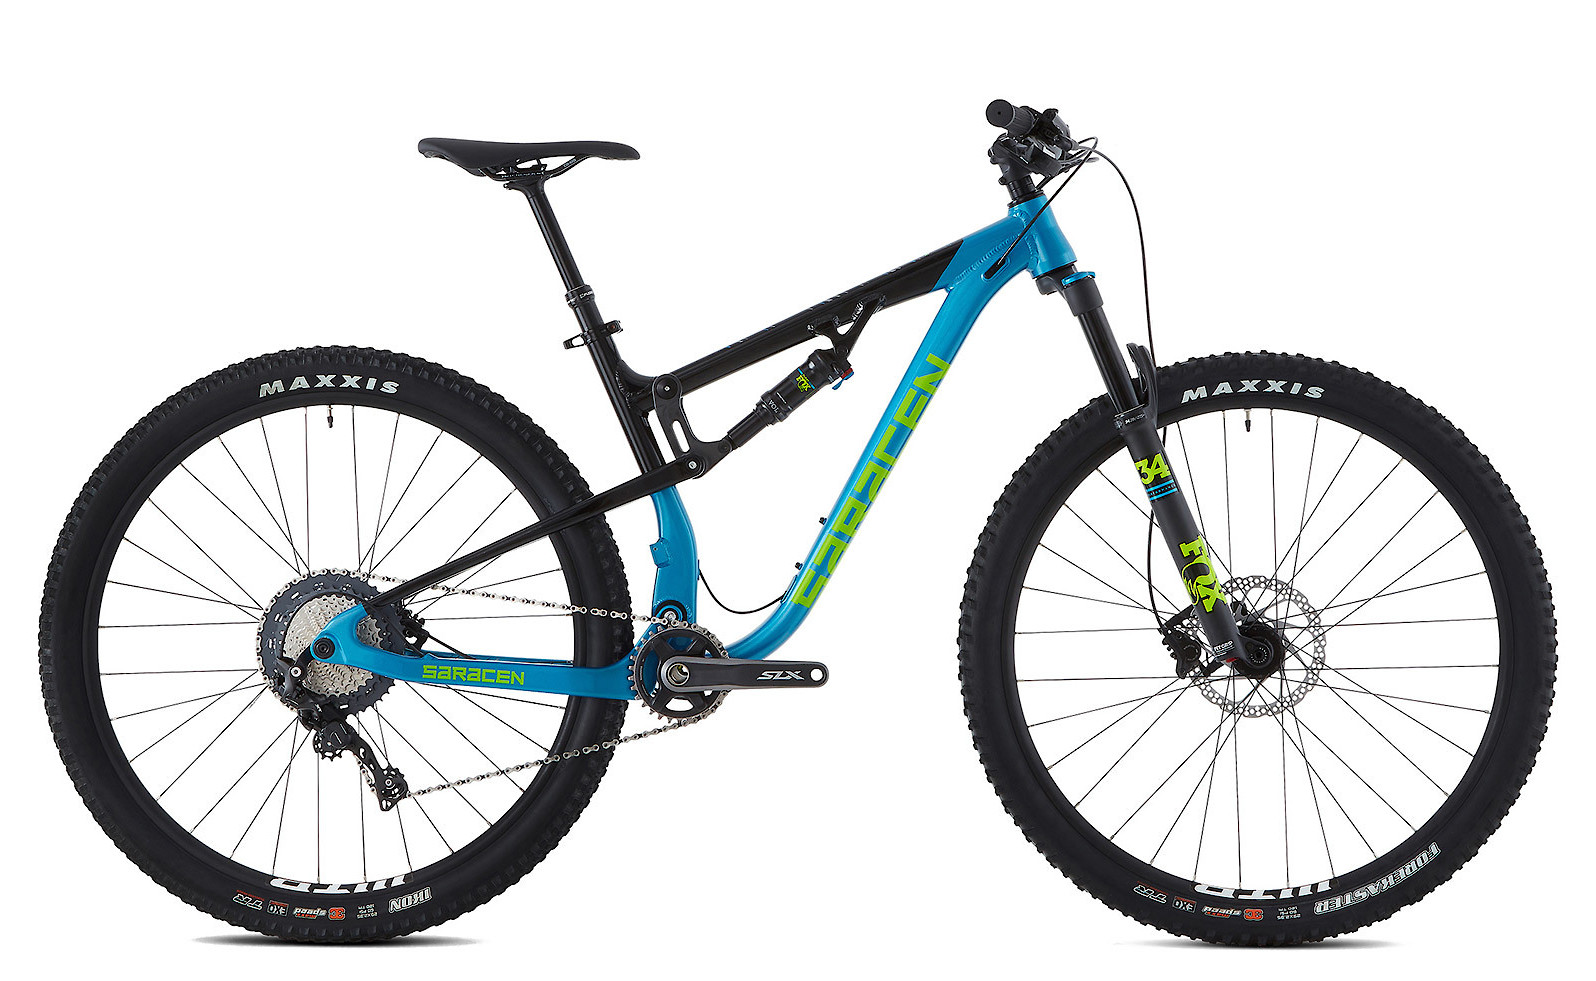 2019 Saracen Traverse Elite Bike